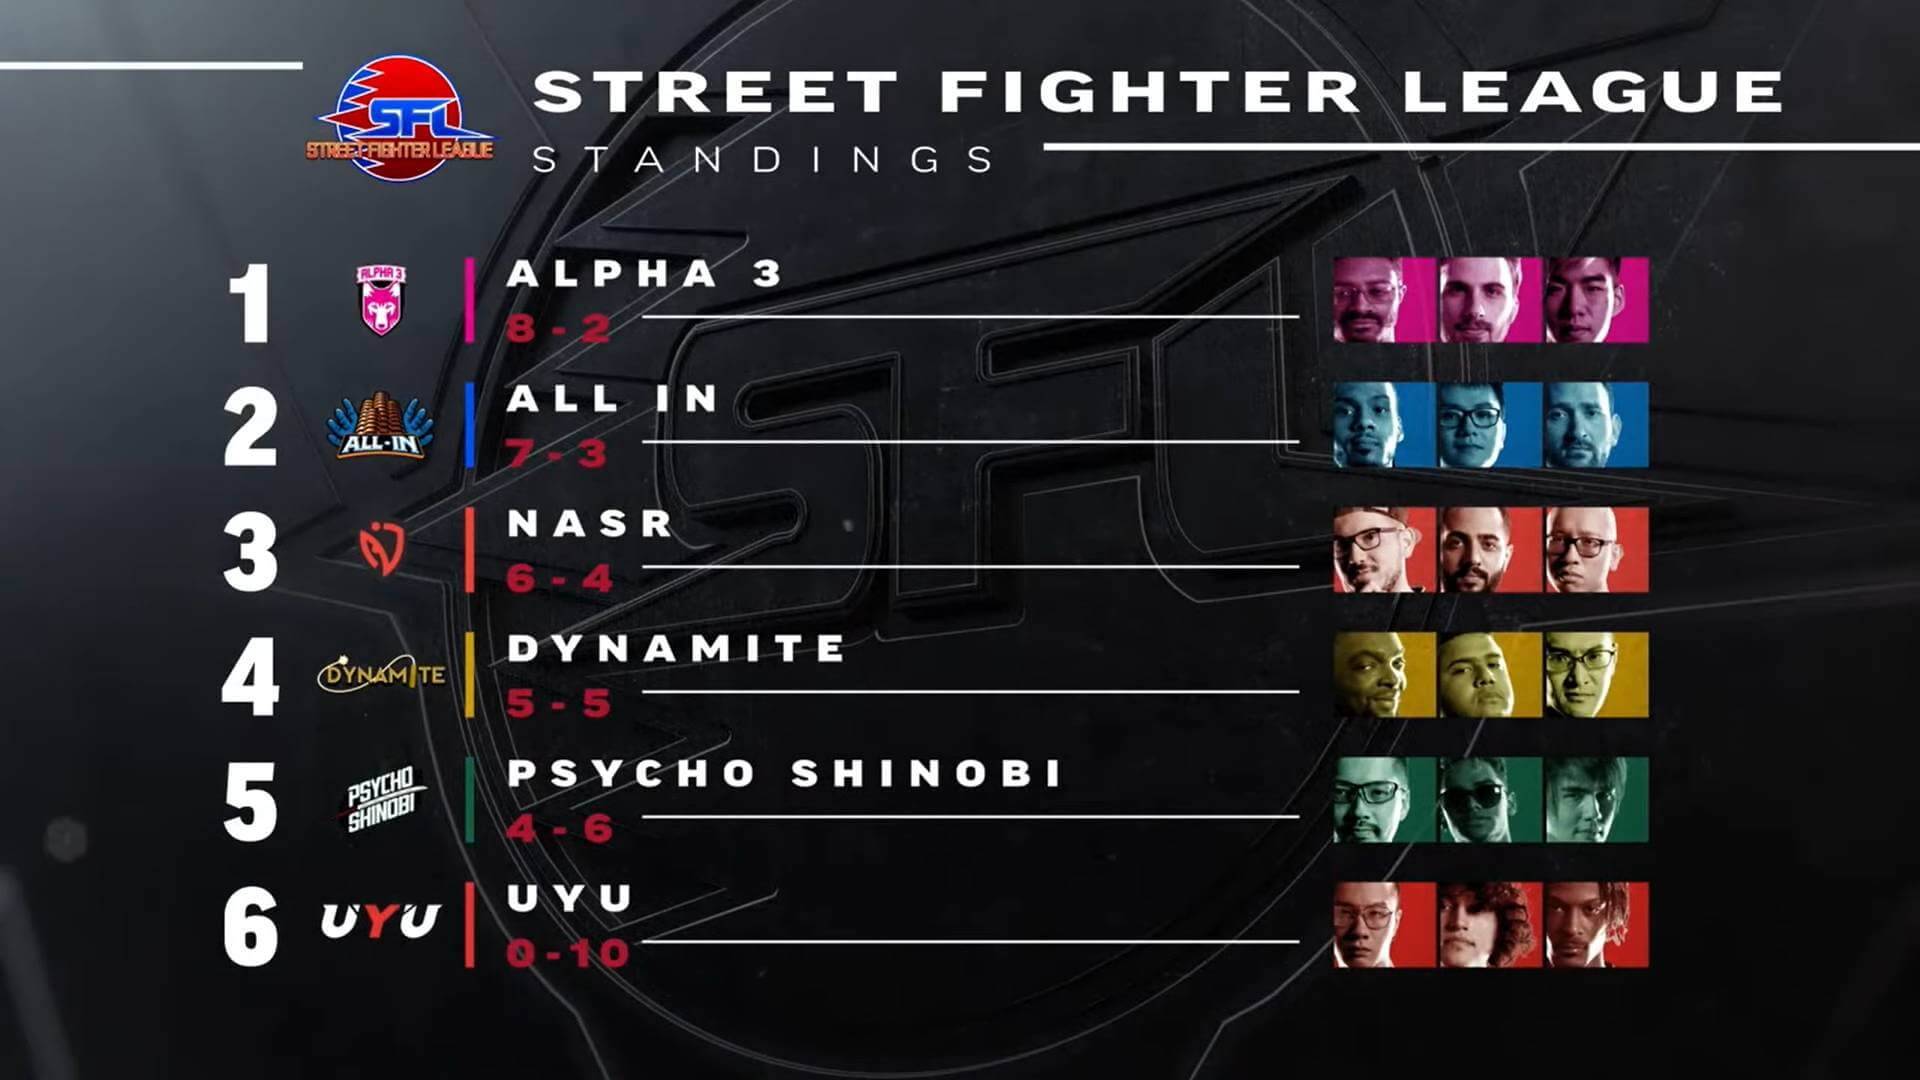 Street Fighter League Pro-Us - results after 15 weeks